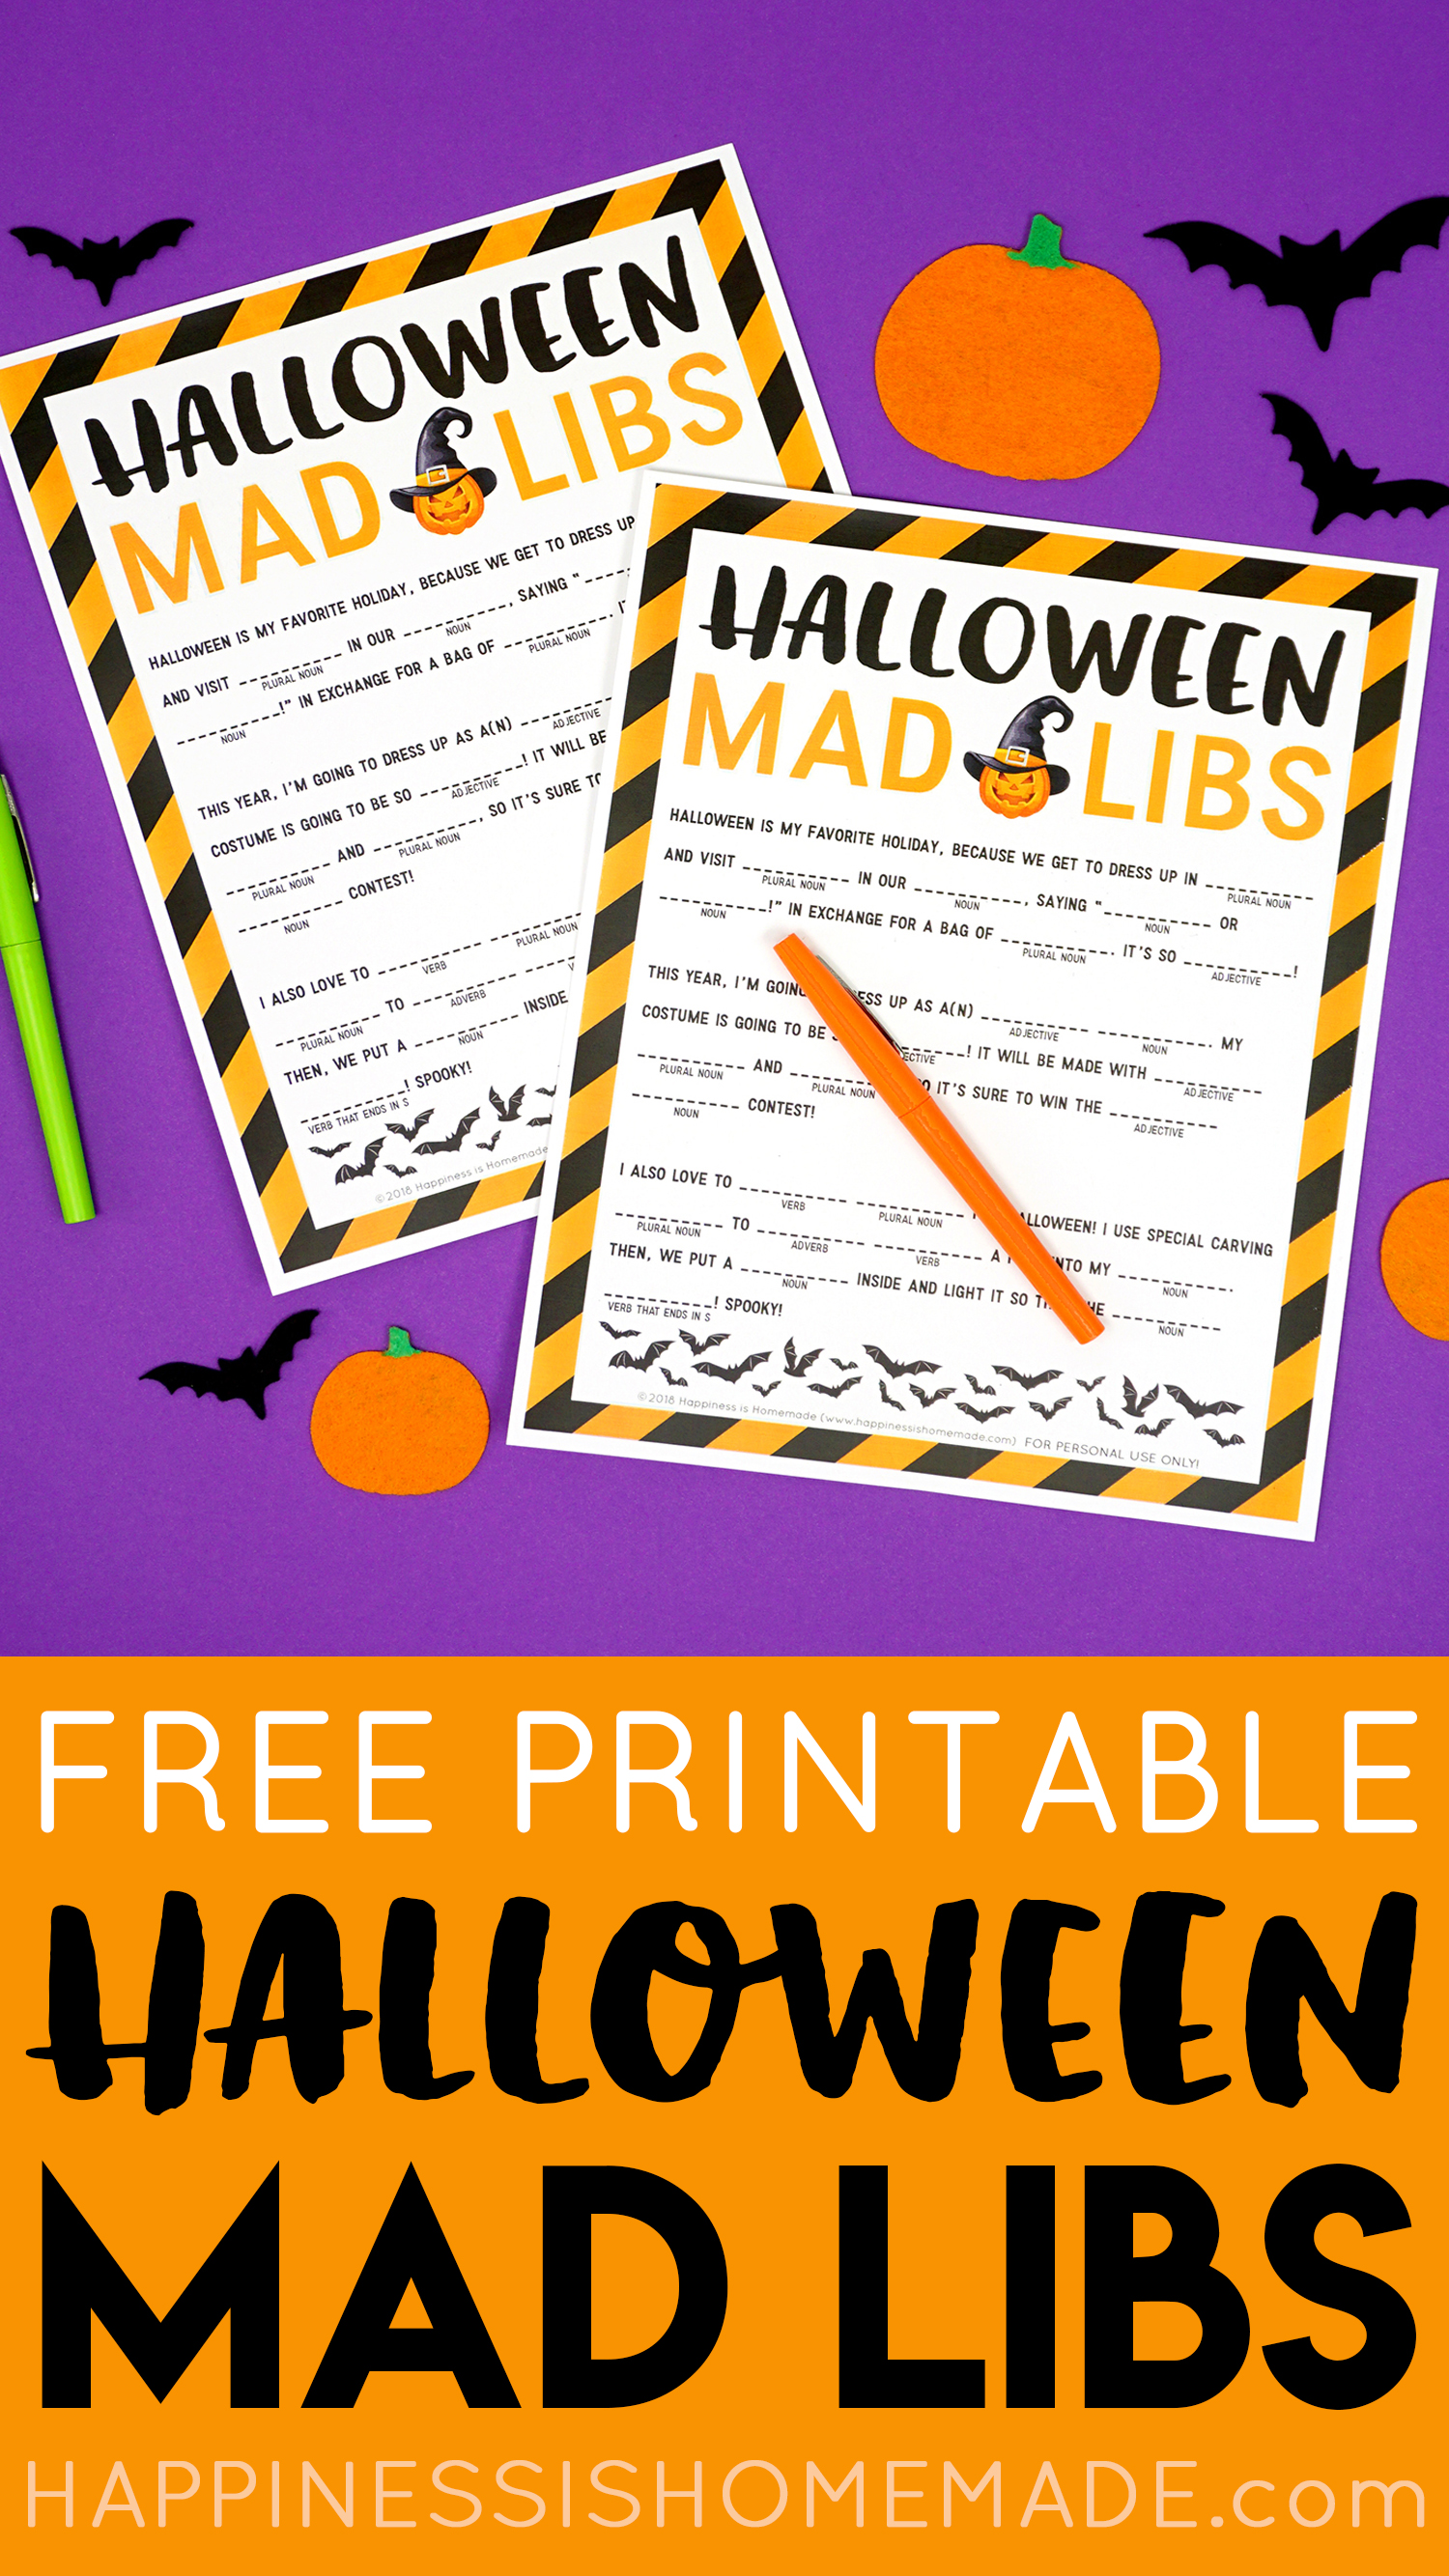 Free Printable Halloween Mad Libs for Kids and Adults